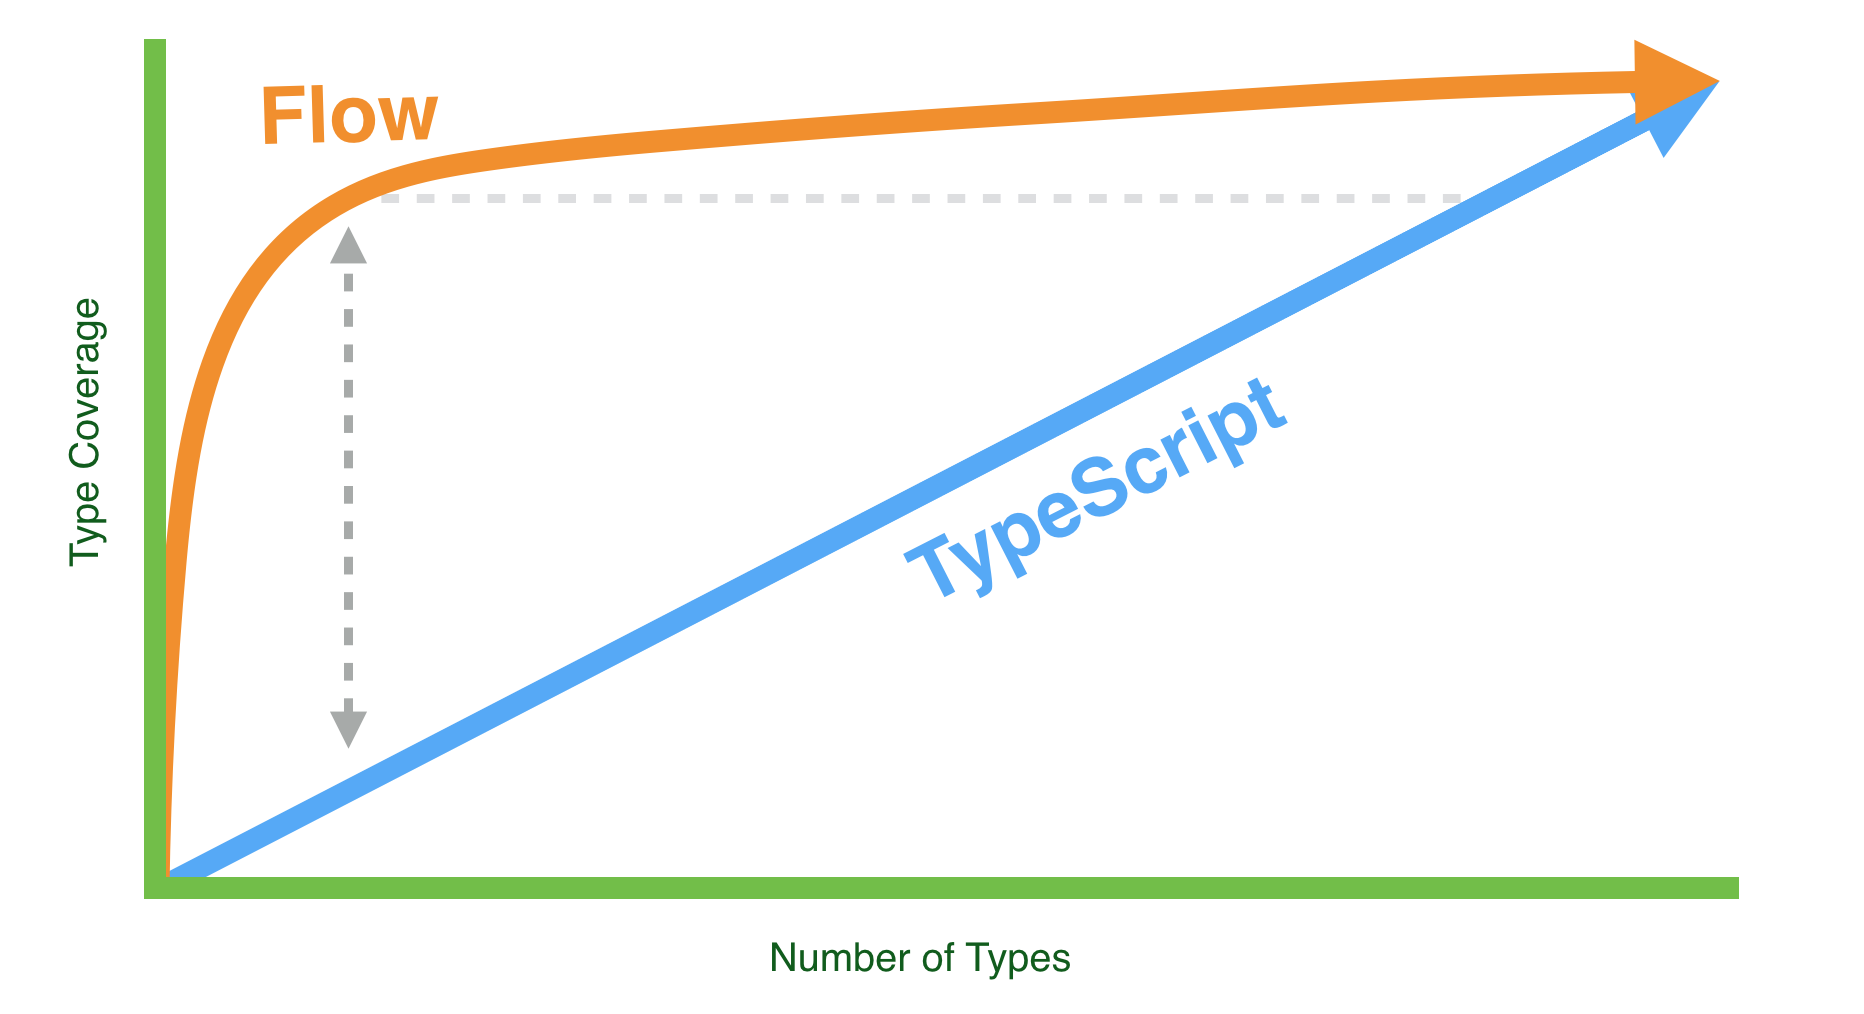 adopting-flow-and-typescript-graph